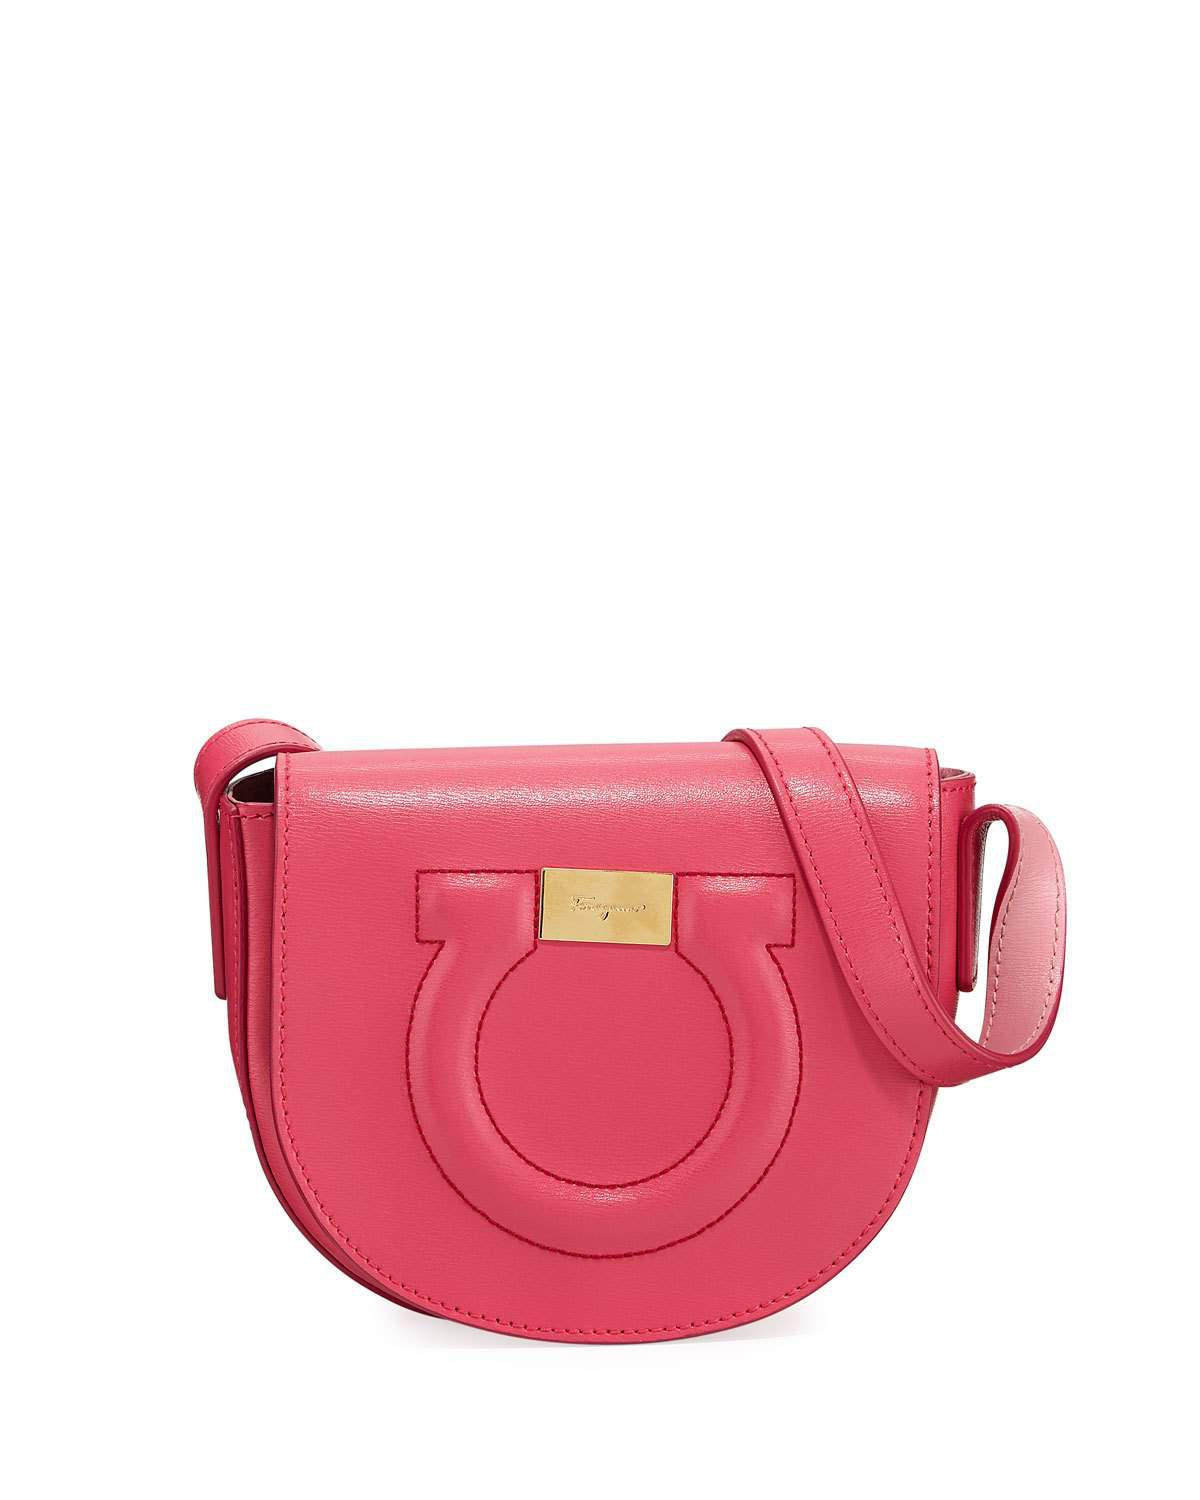 Salvatore Ferragamo Gancio City Crossbody Bag bbf30af533560